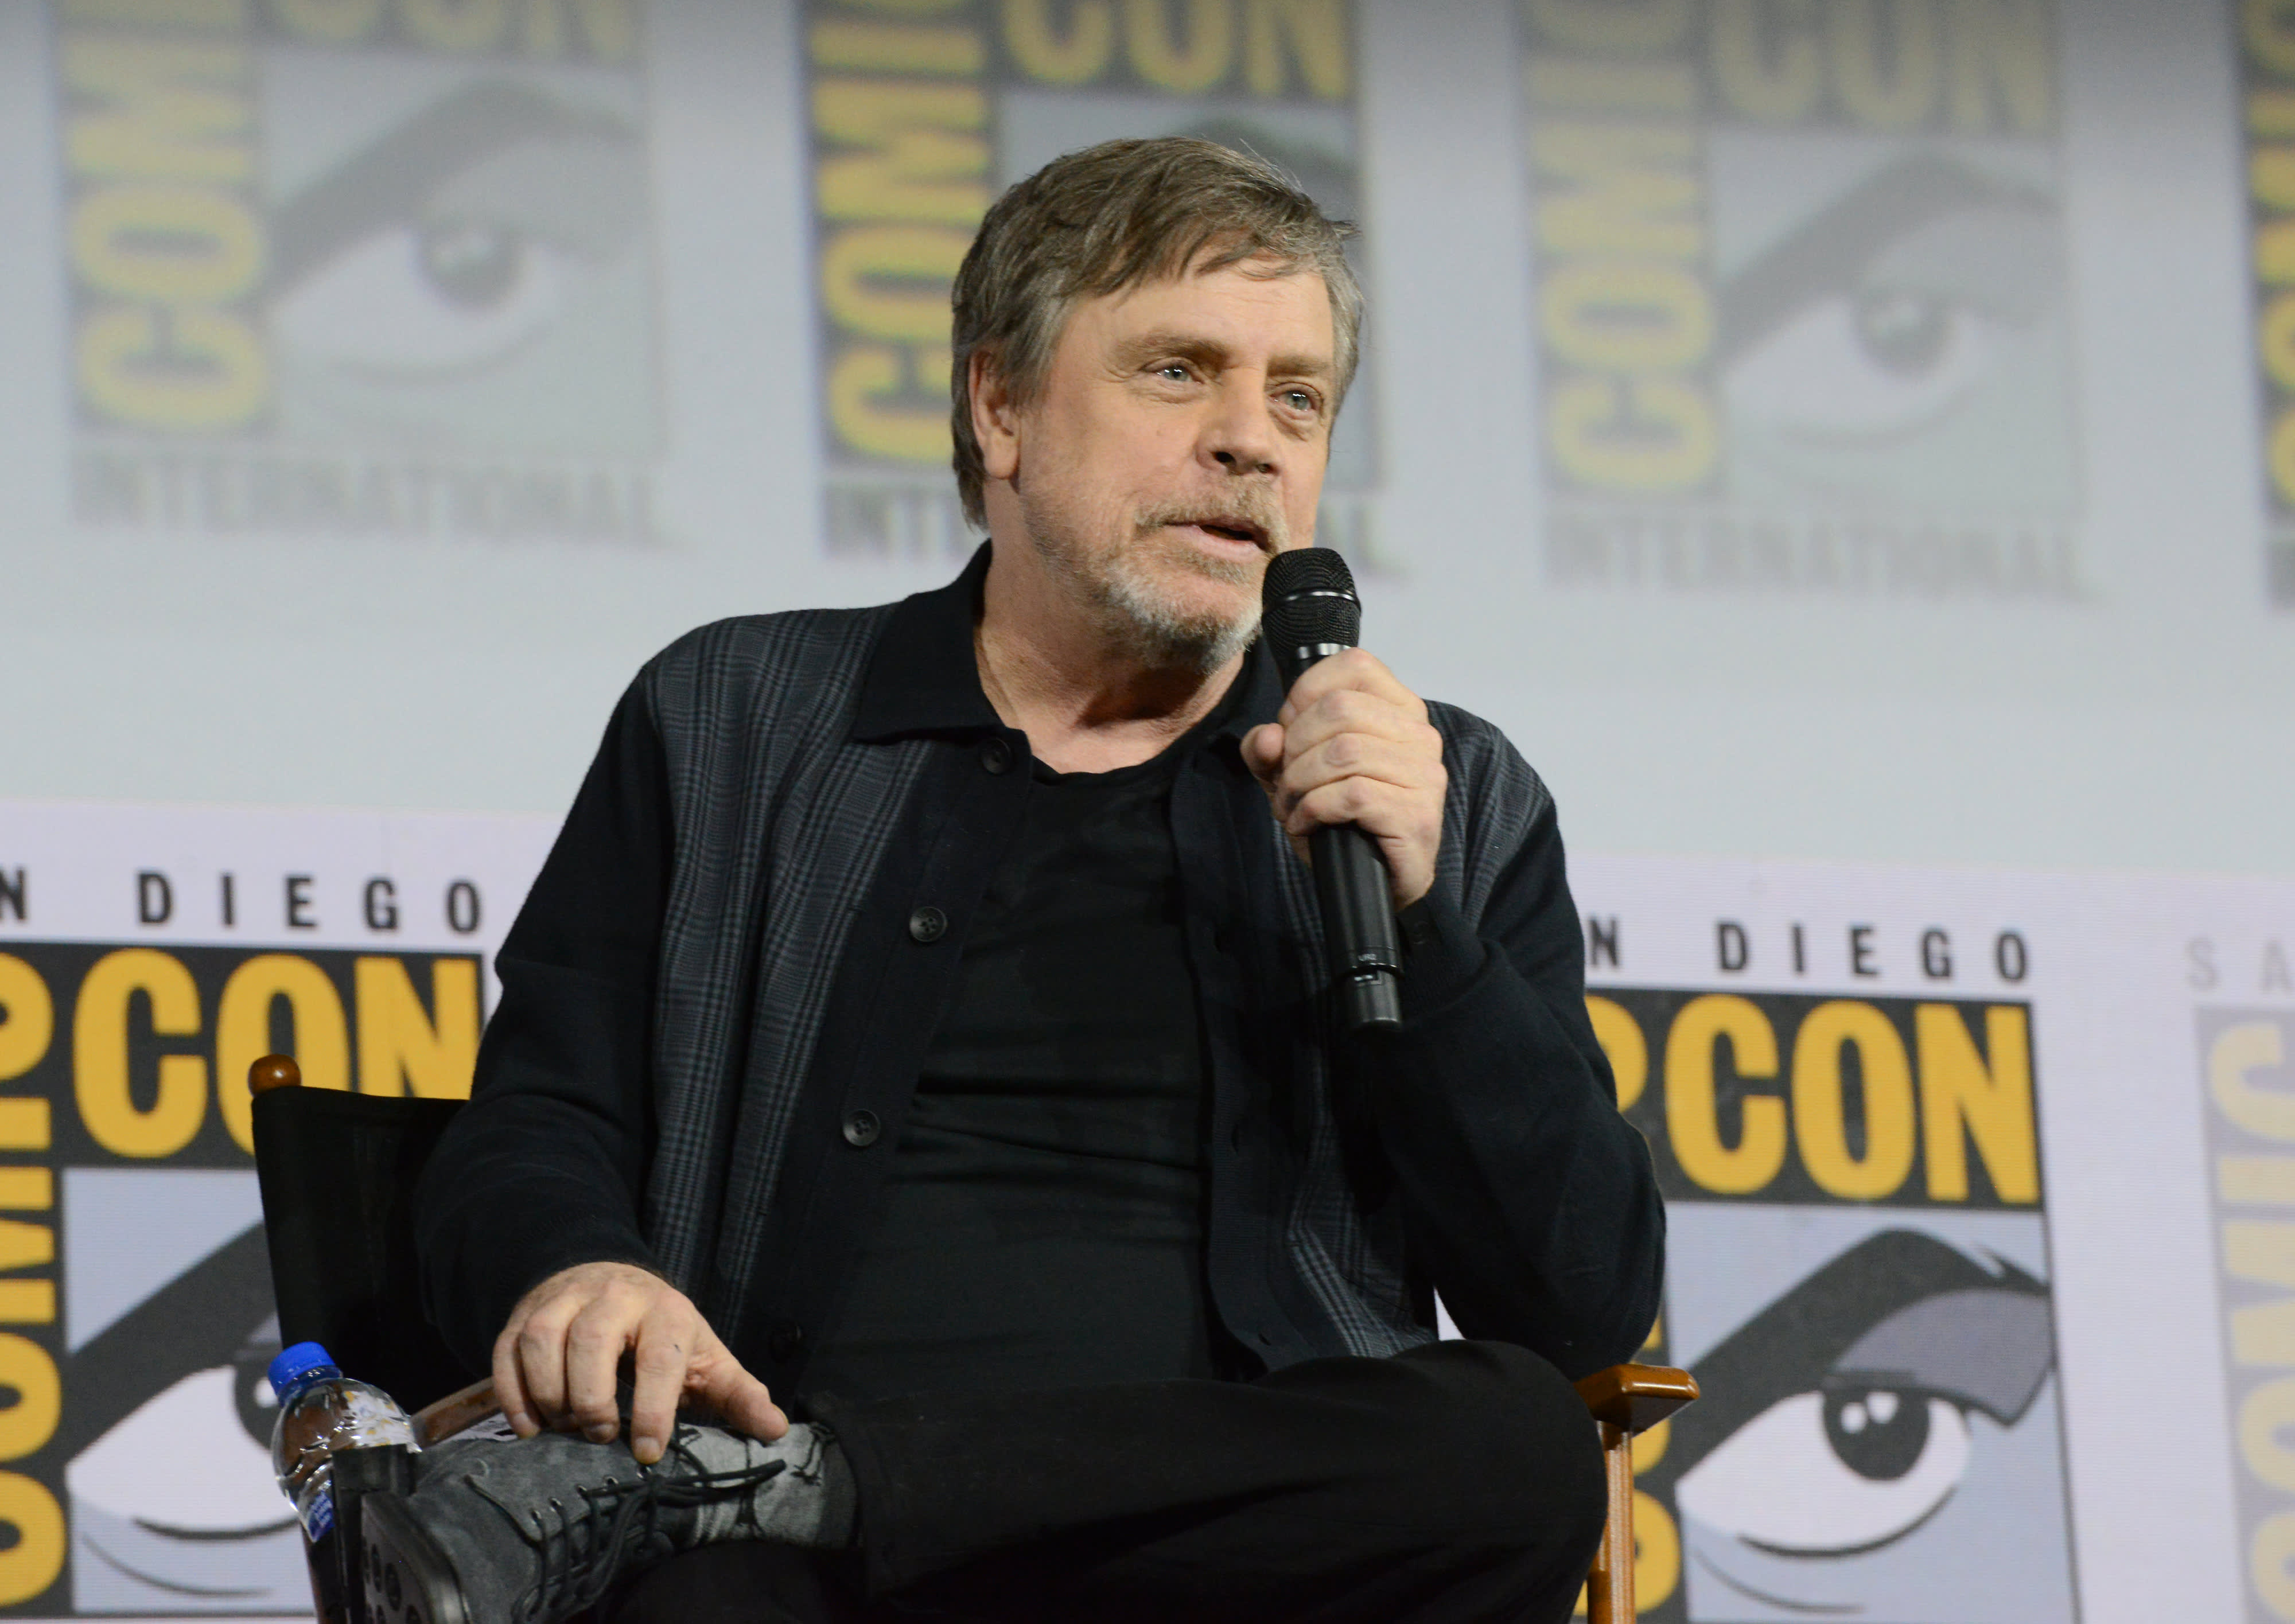 'Star Wars' star Mark Hamill deleted his Facebook account because of its political advertising policy